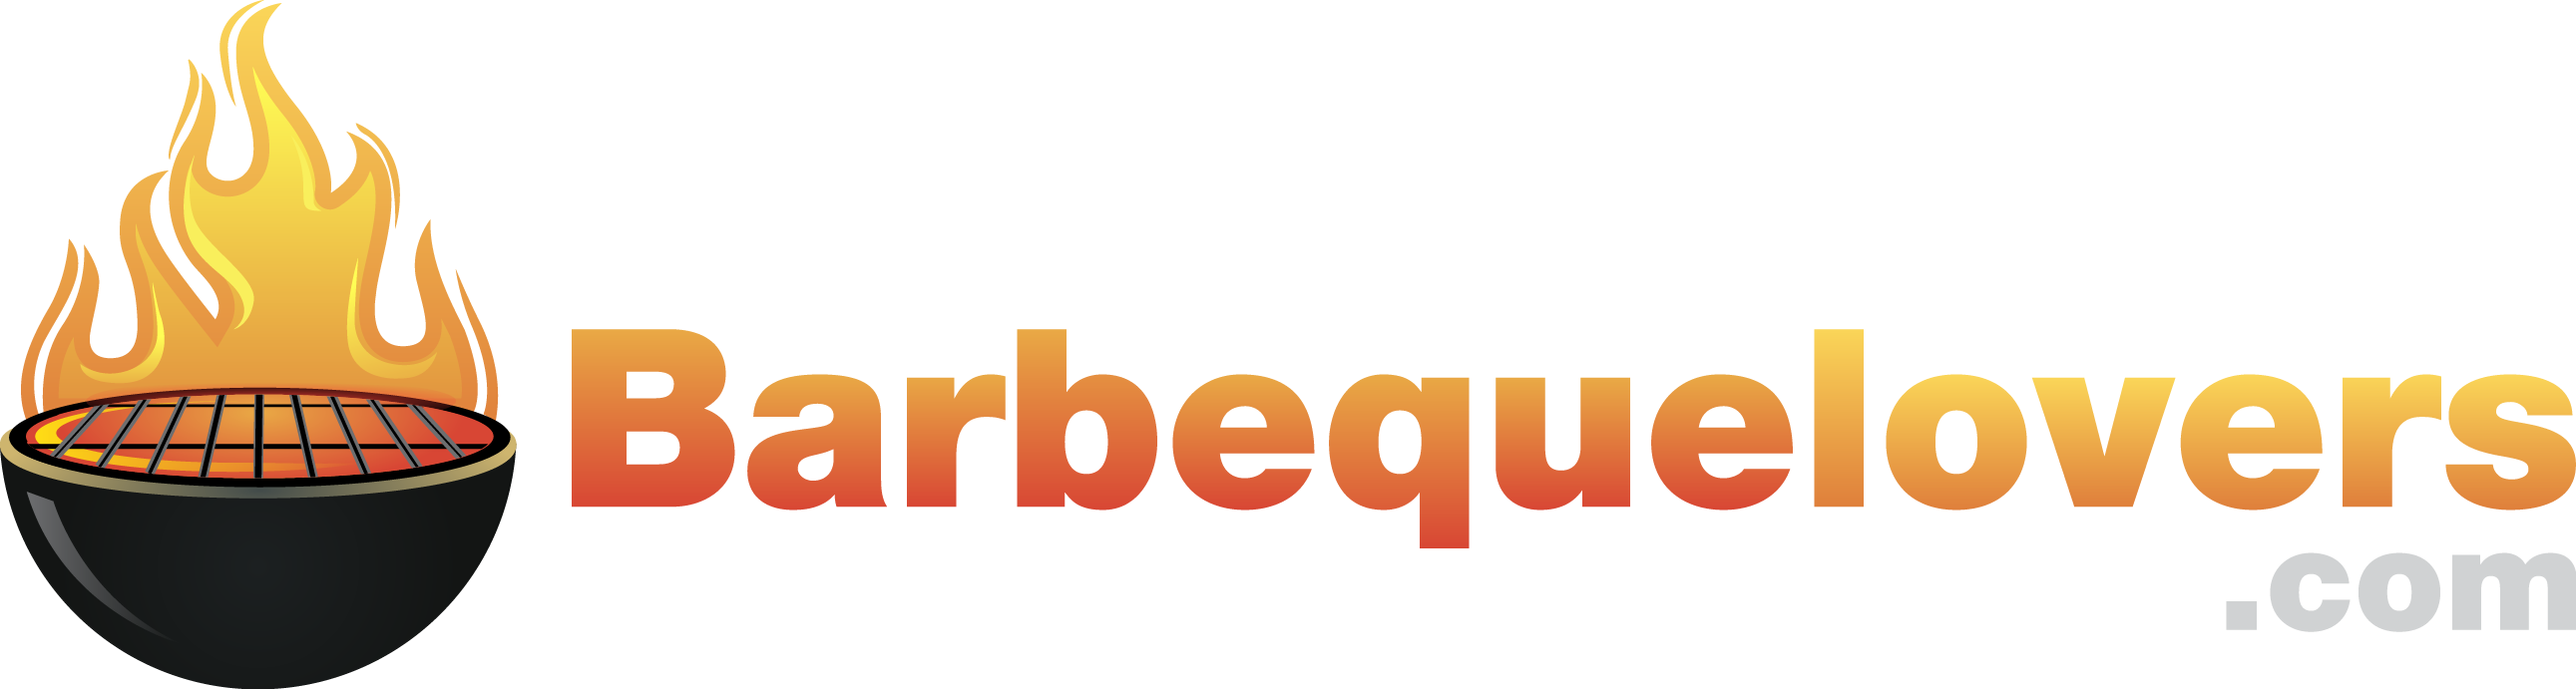 BarbequeLovers.com